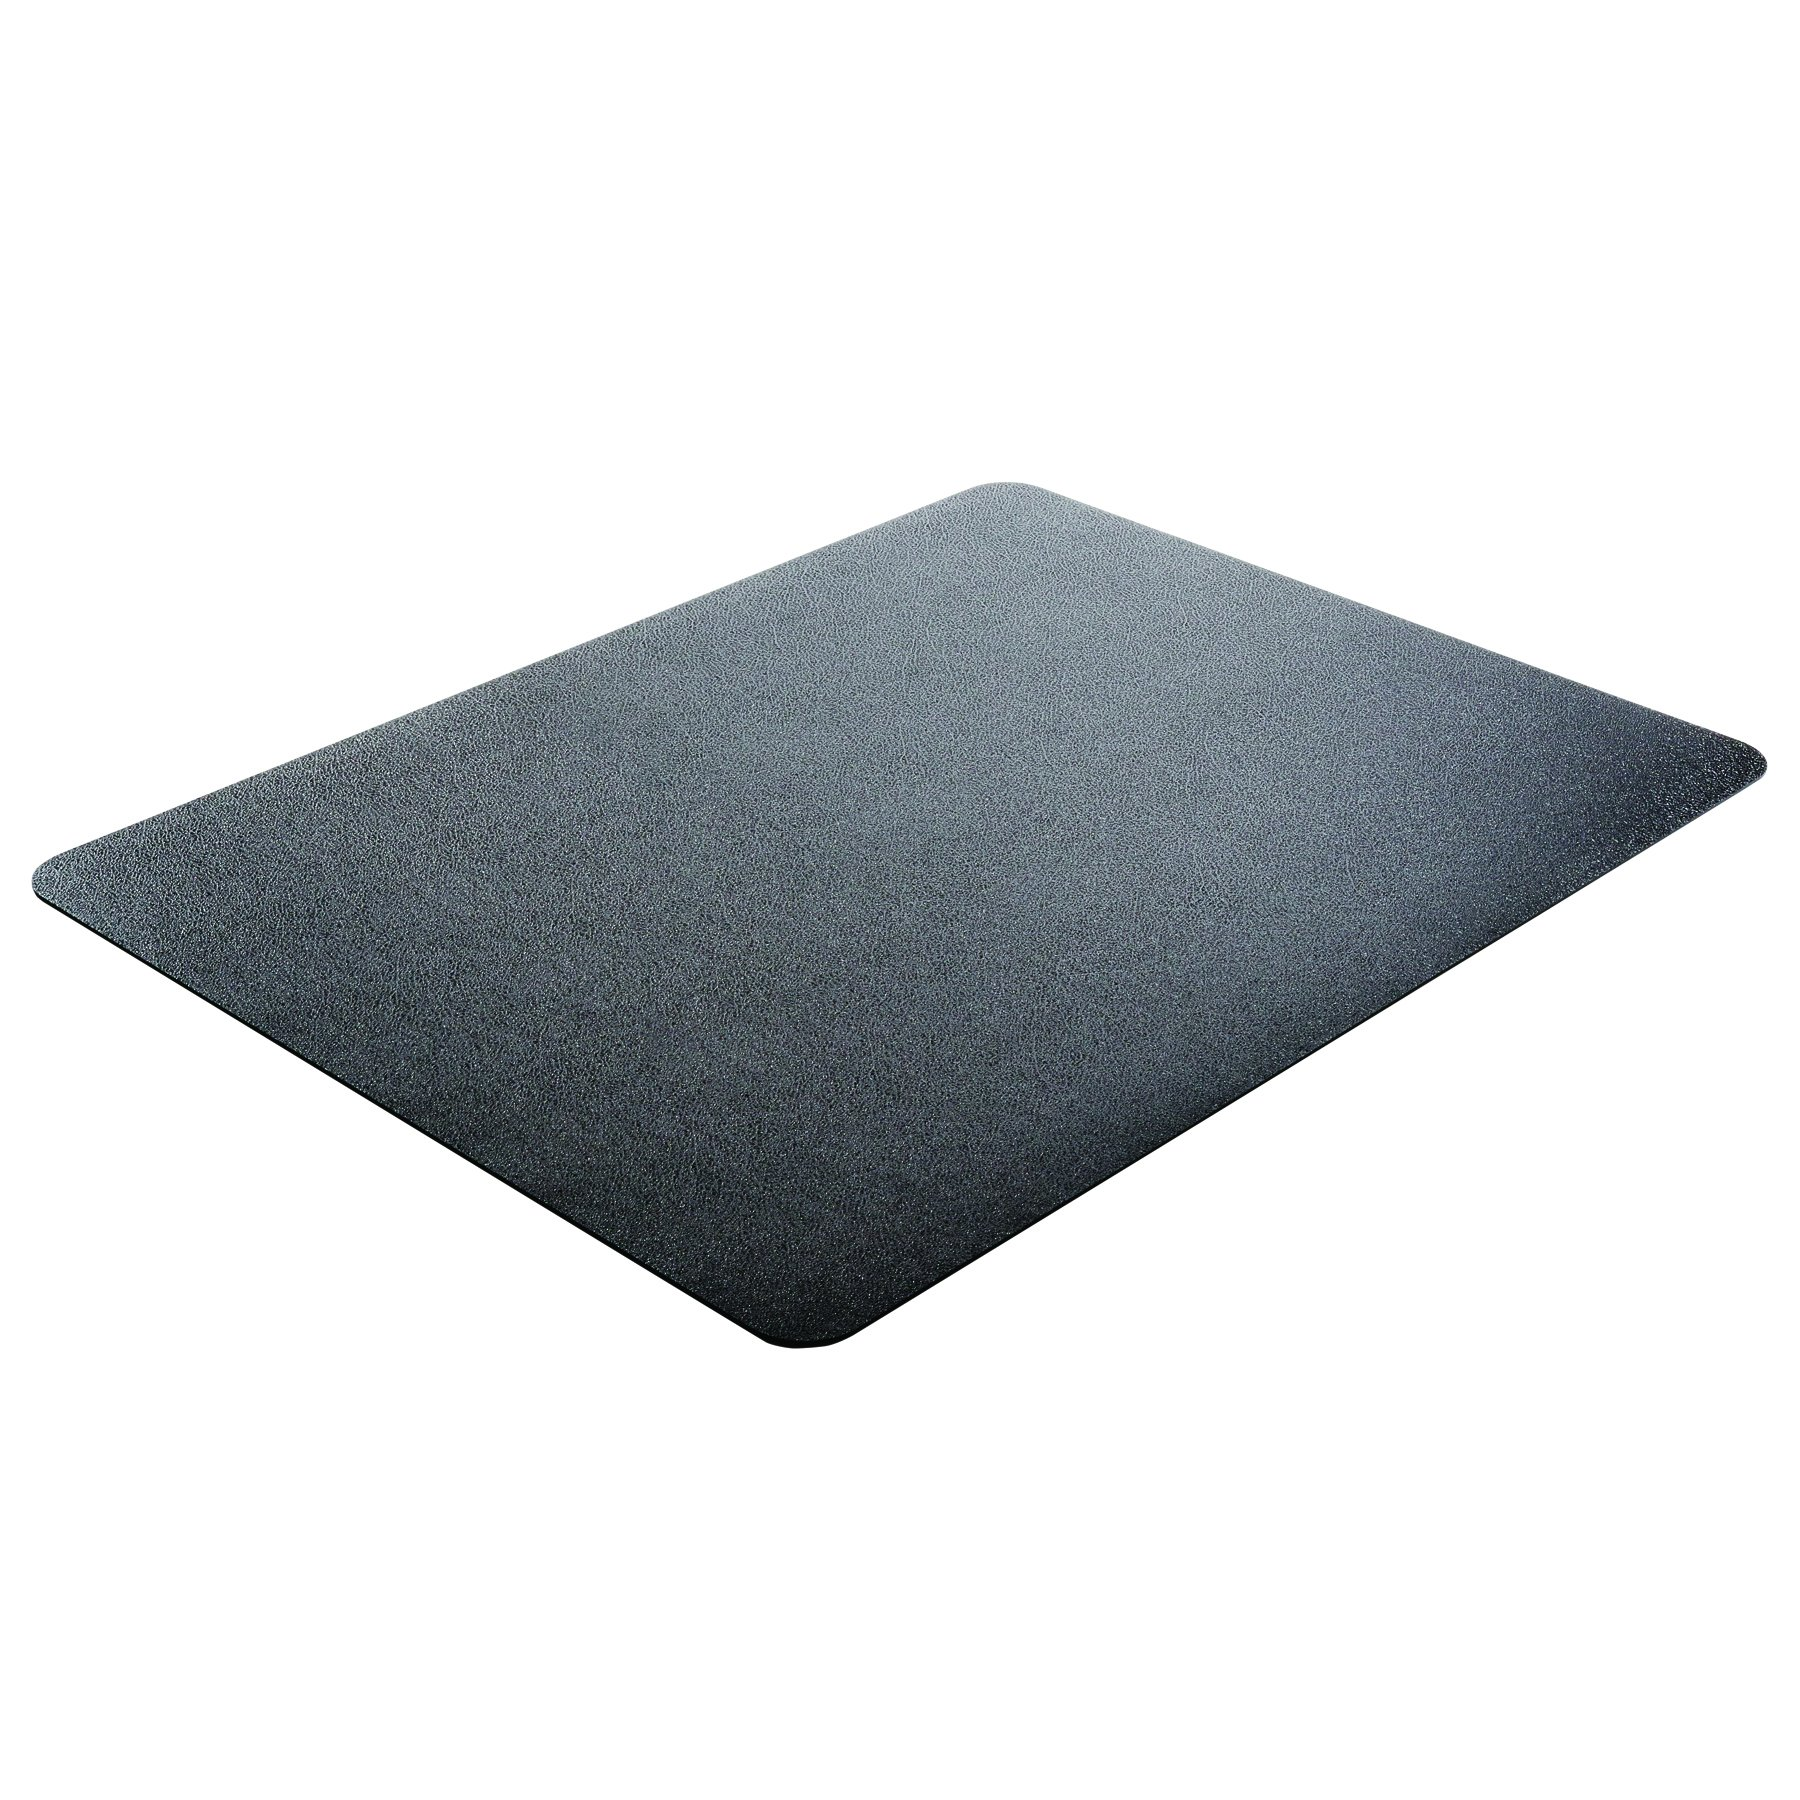 Deflecto EconoMat Black Chair Mat, Hard Floor Use, Rectangle, Straight Edge, 36 x 48 Inches (CM21142BLK) by Deflecto